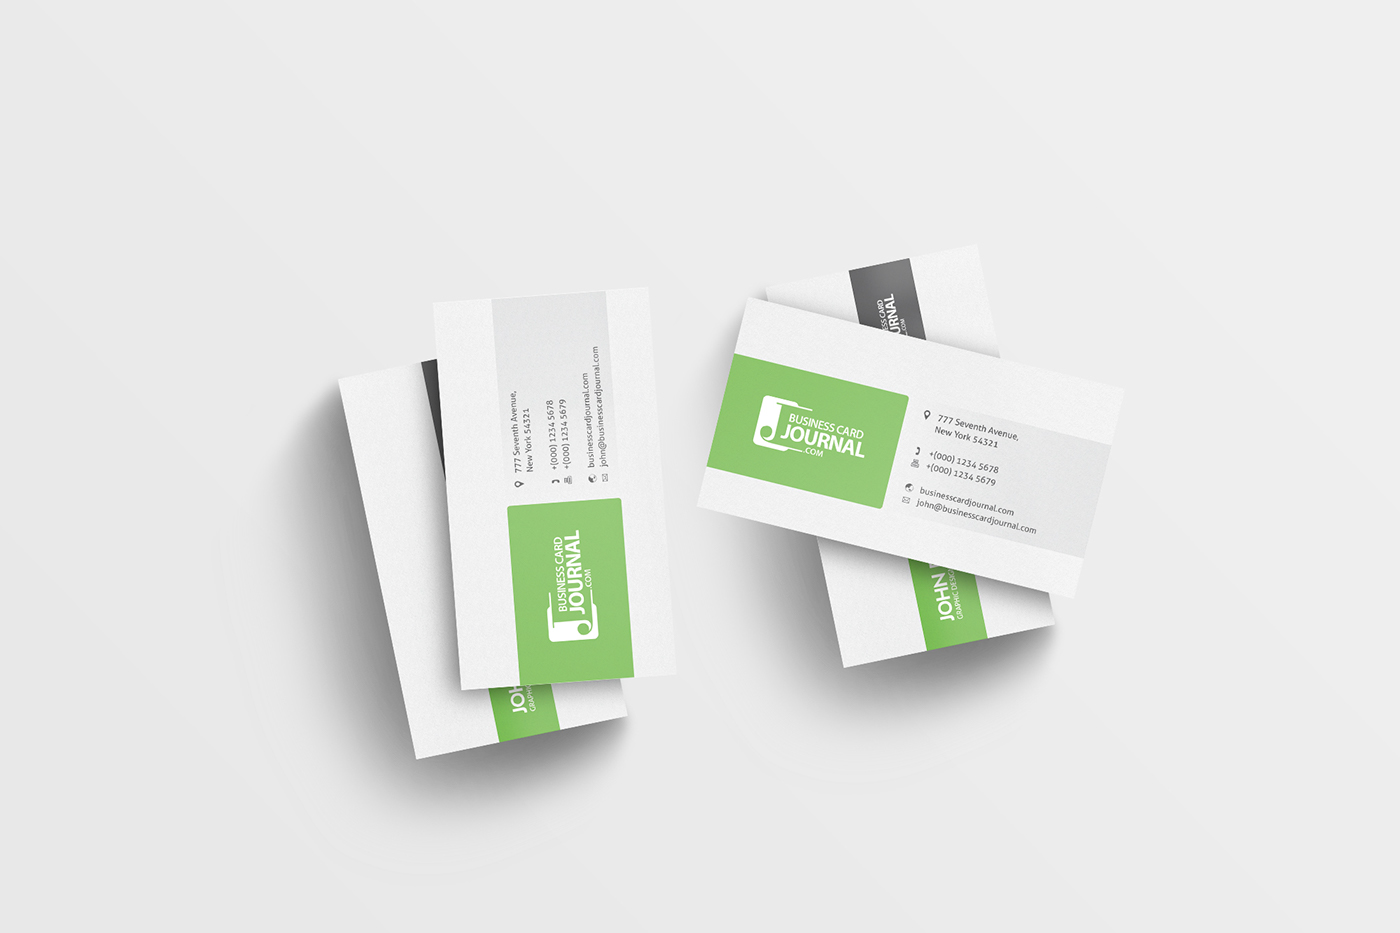 Free business card mock up 8 psd file on behance this high quality business card mockup features realistic shadows editable card design customizable background and floor color reheart Images